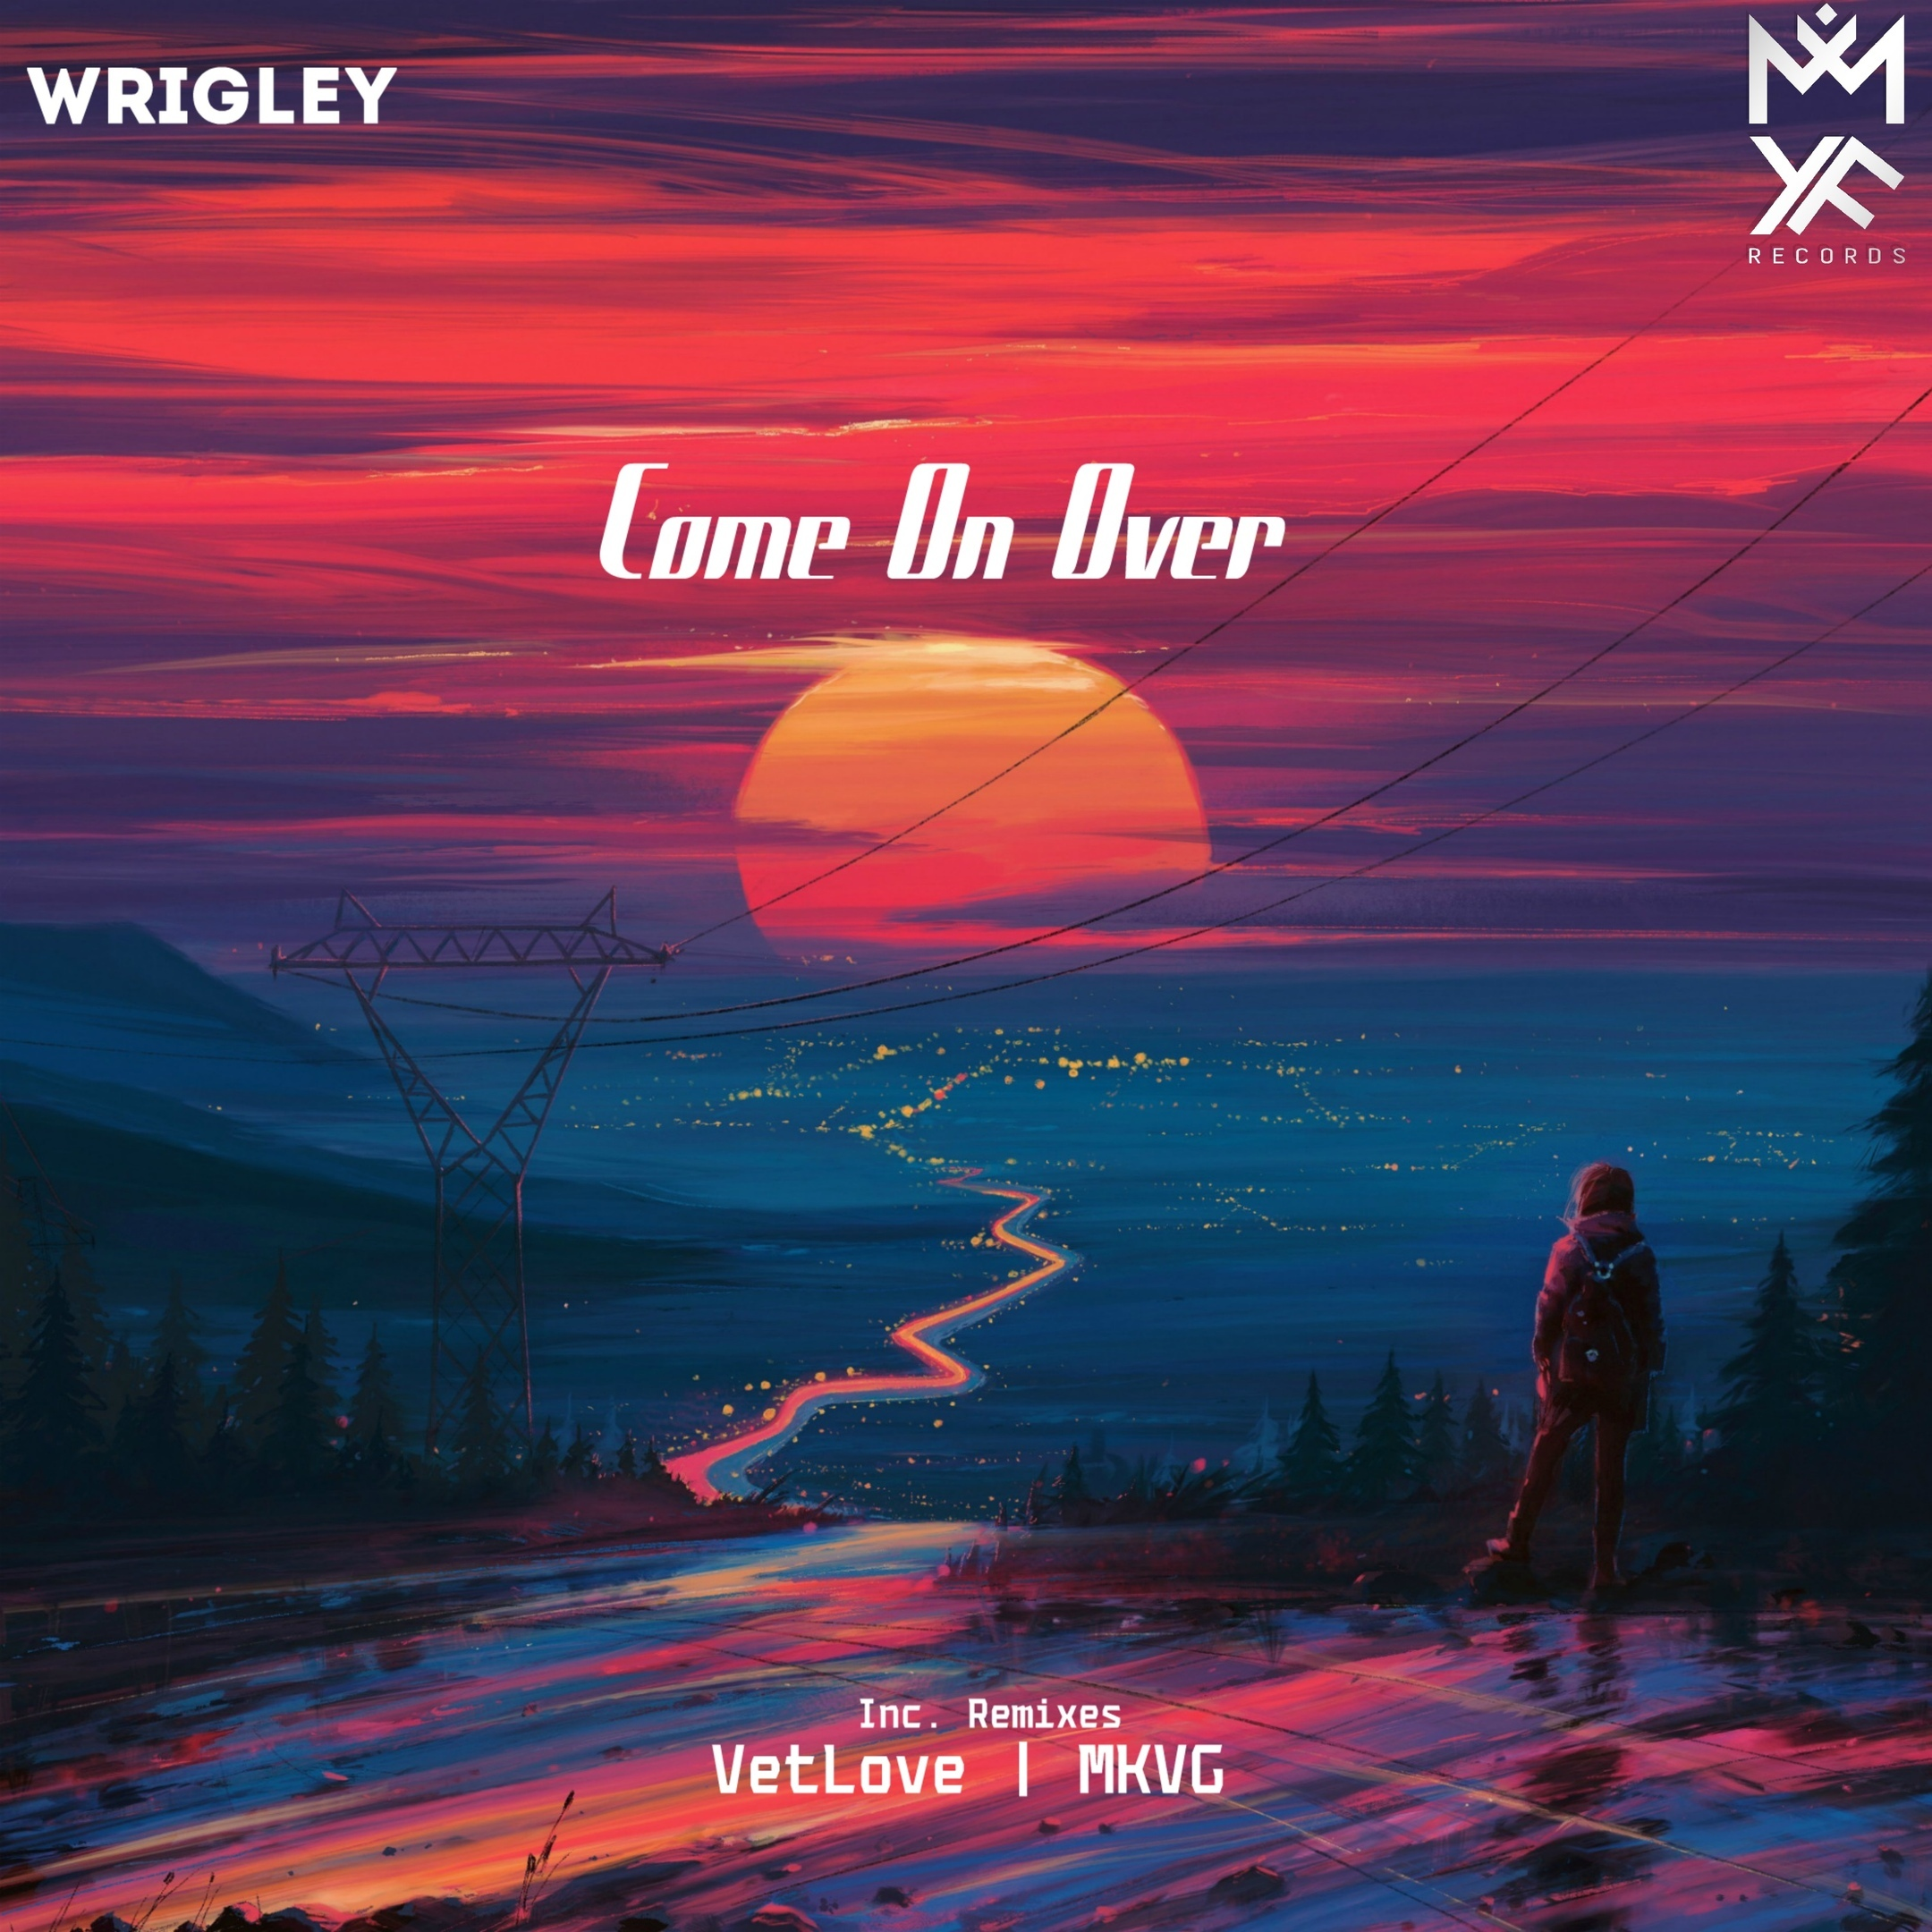 Wrigley - Come On Over (VetLove Remix)